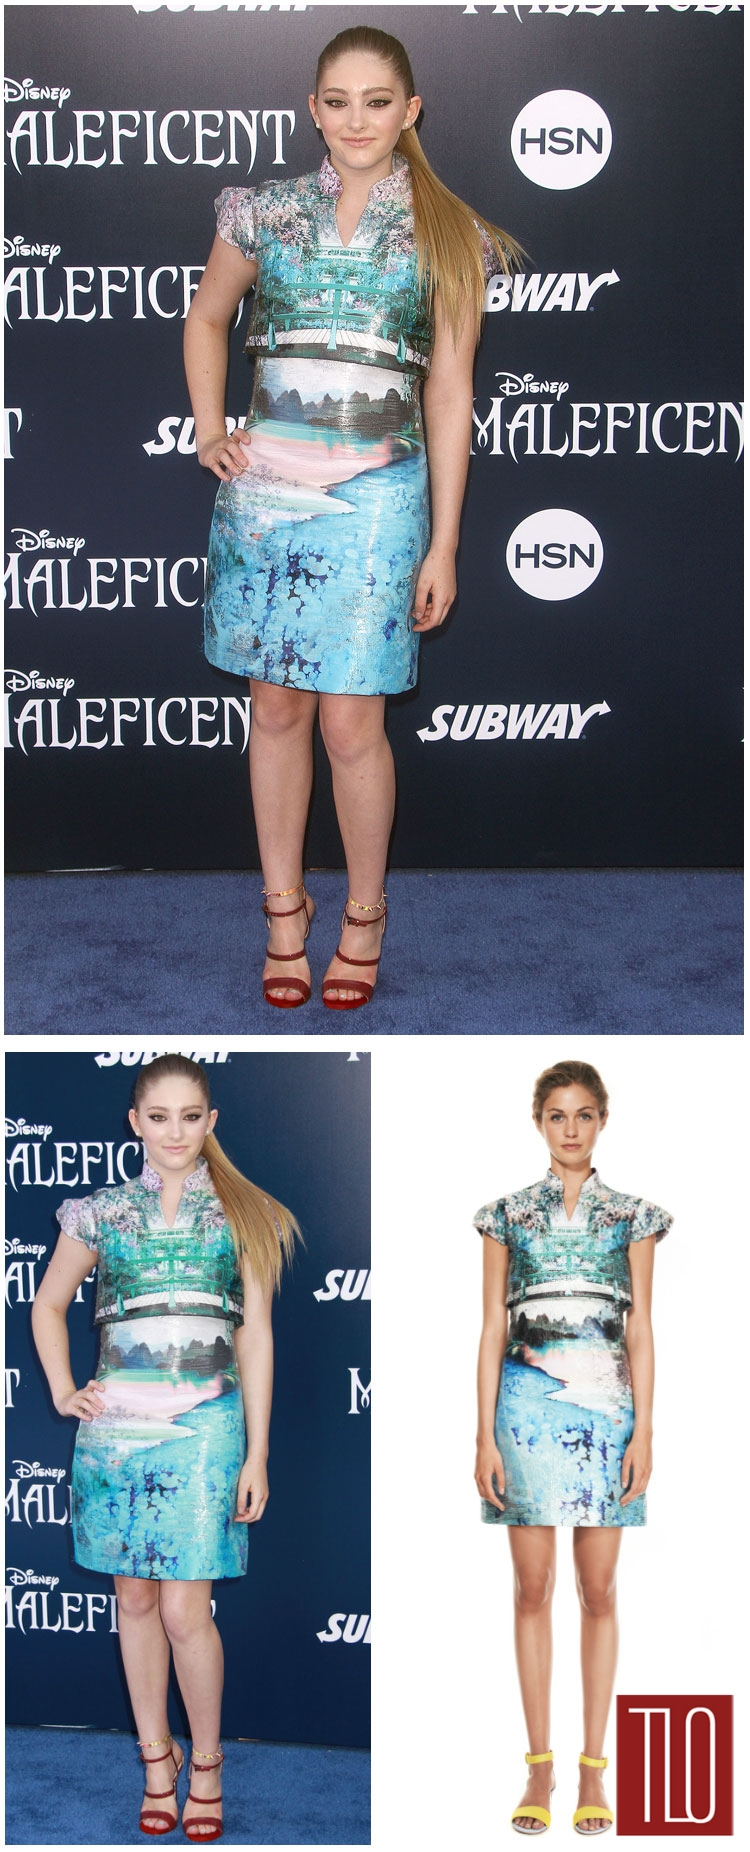 Willow-Shields-Maleficent-Premiere-Mary-Katrantzou-Tom-Lorenzo-Site-TLO (1)